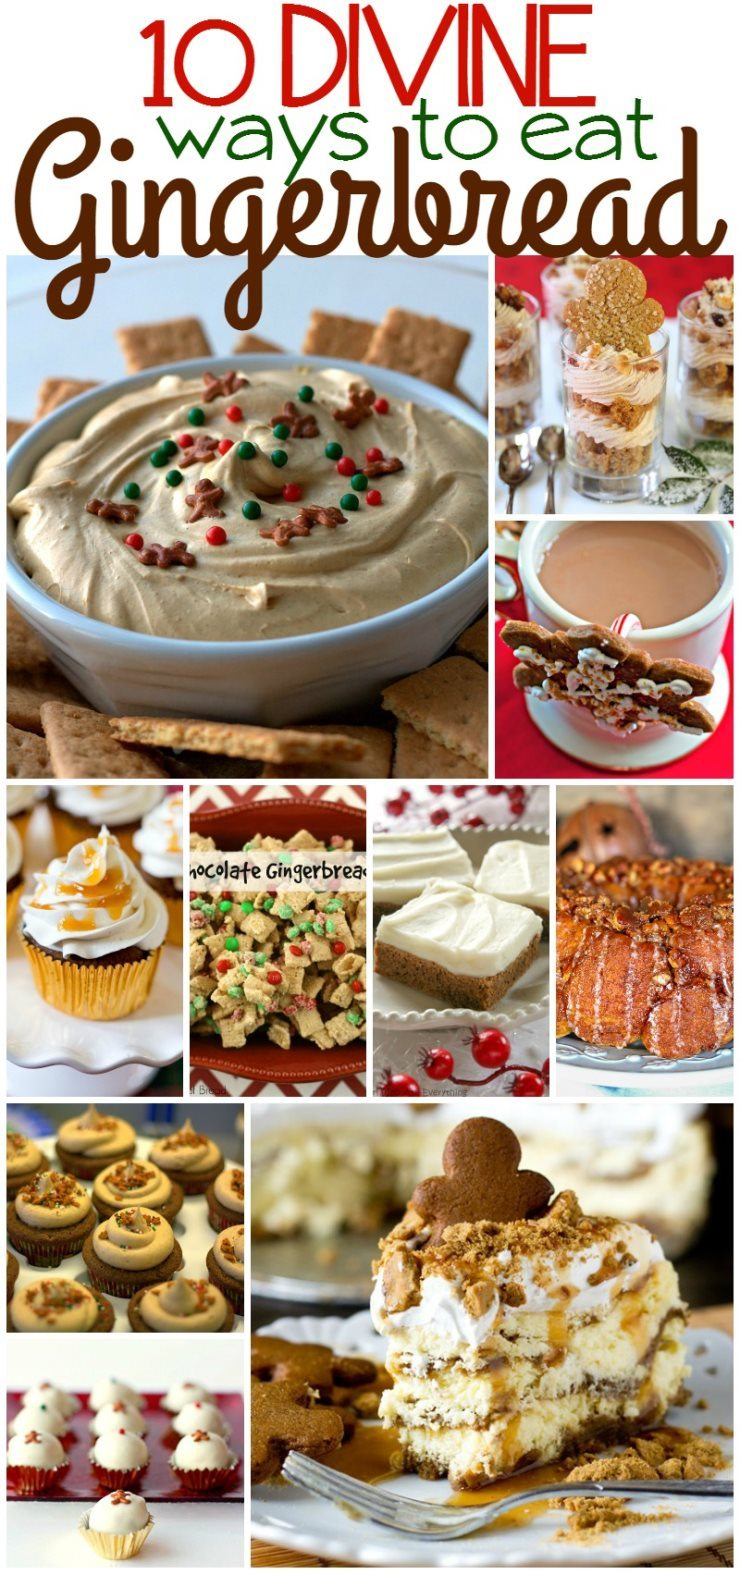 A collage of gingerbread recipes with text overlay for Pinterest via @foodfolksandfun